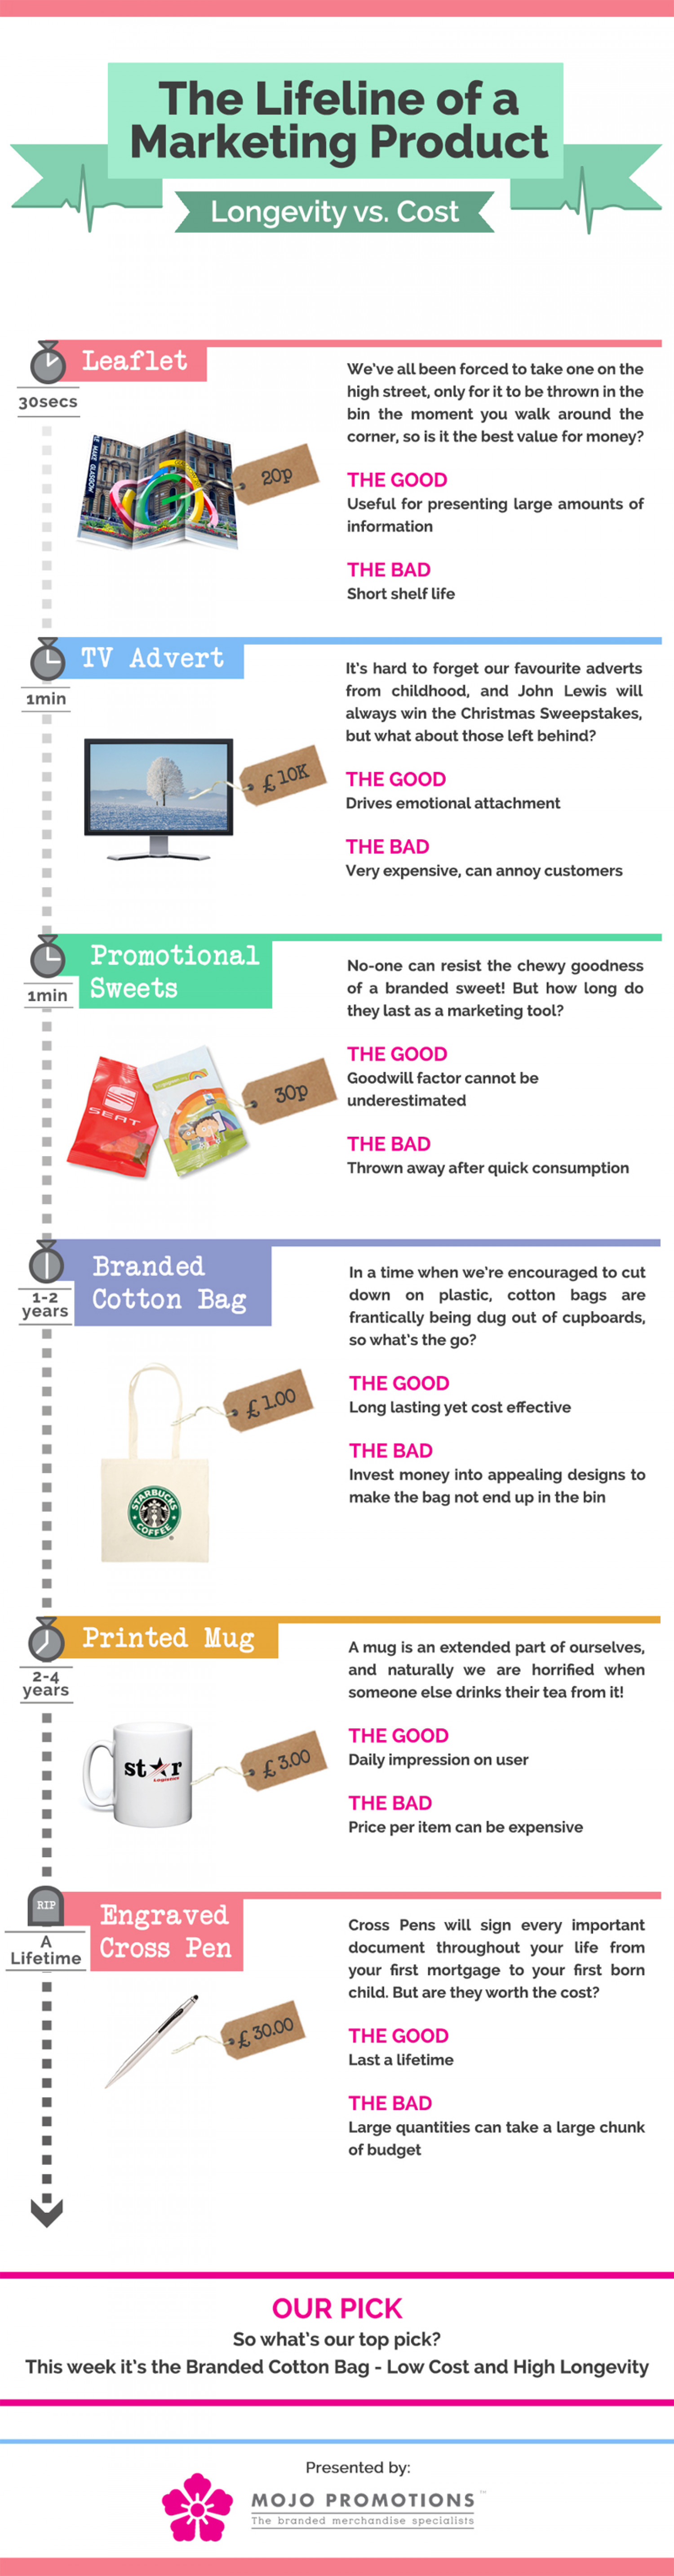 The Lifeline of a Marketing Product Infographic